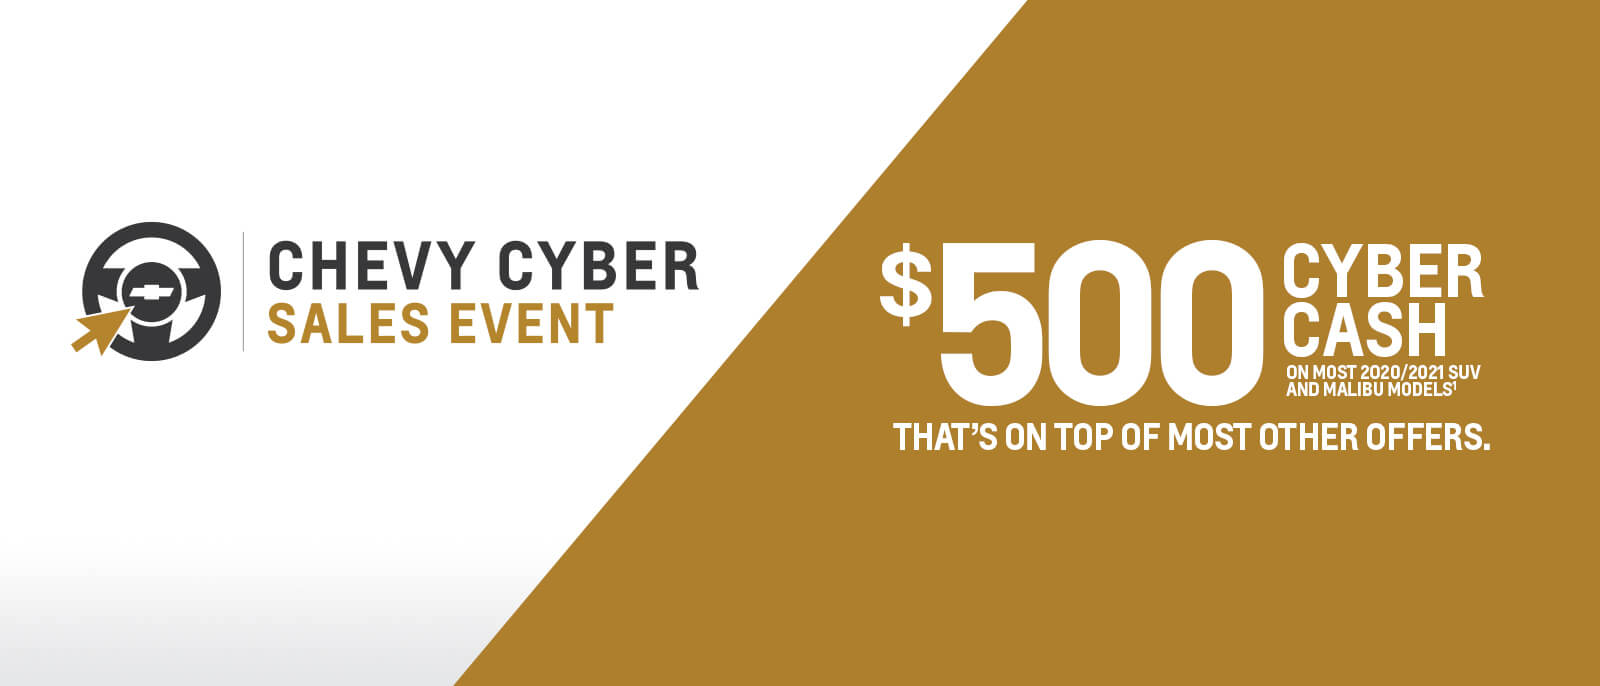 Chevy Cyber Sales Event - $500 Cyber Cash on most 2020/2021 SUV and Malibu Models - That's on top of most other offers